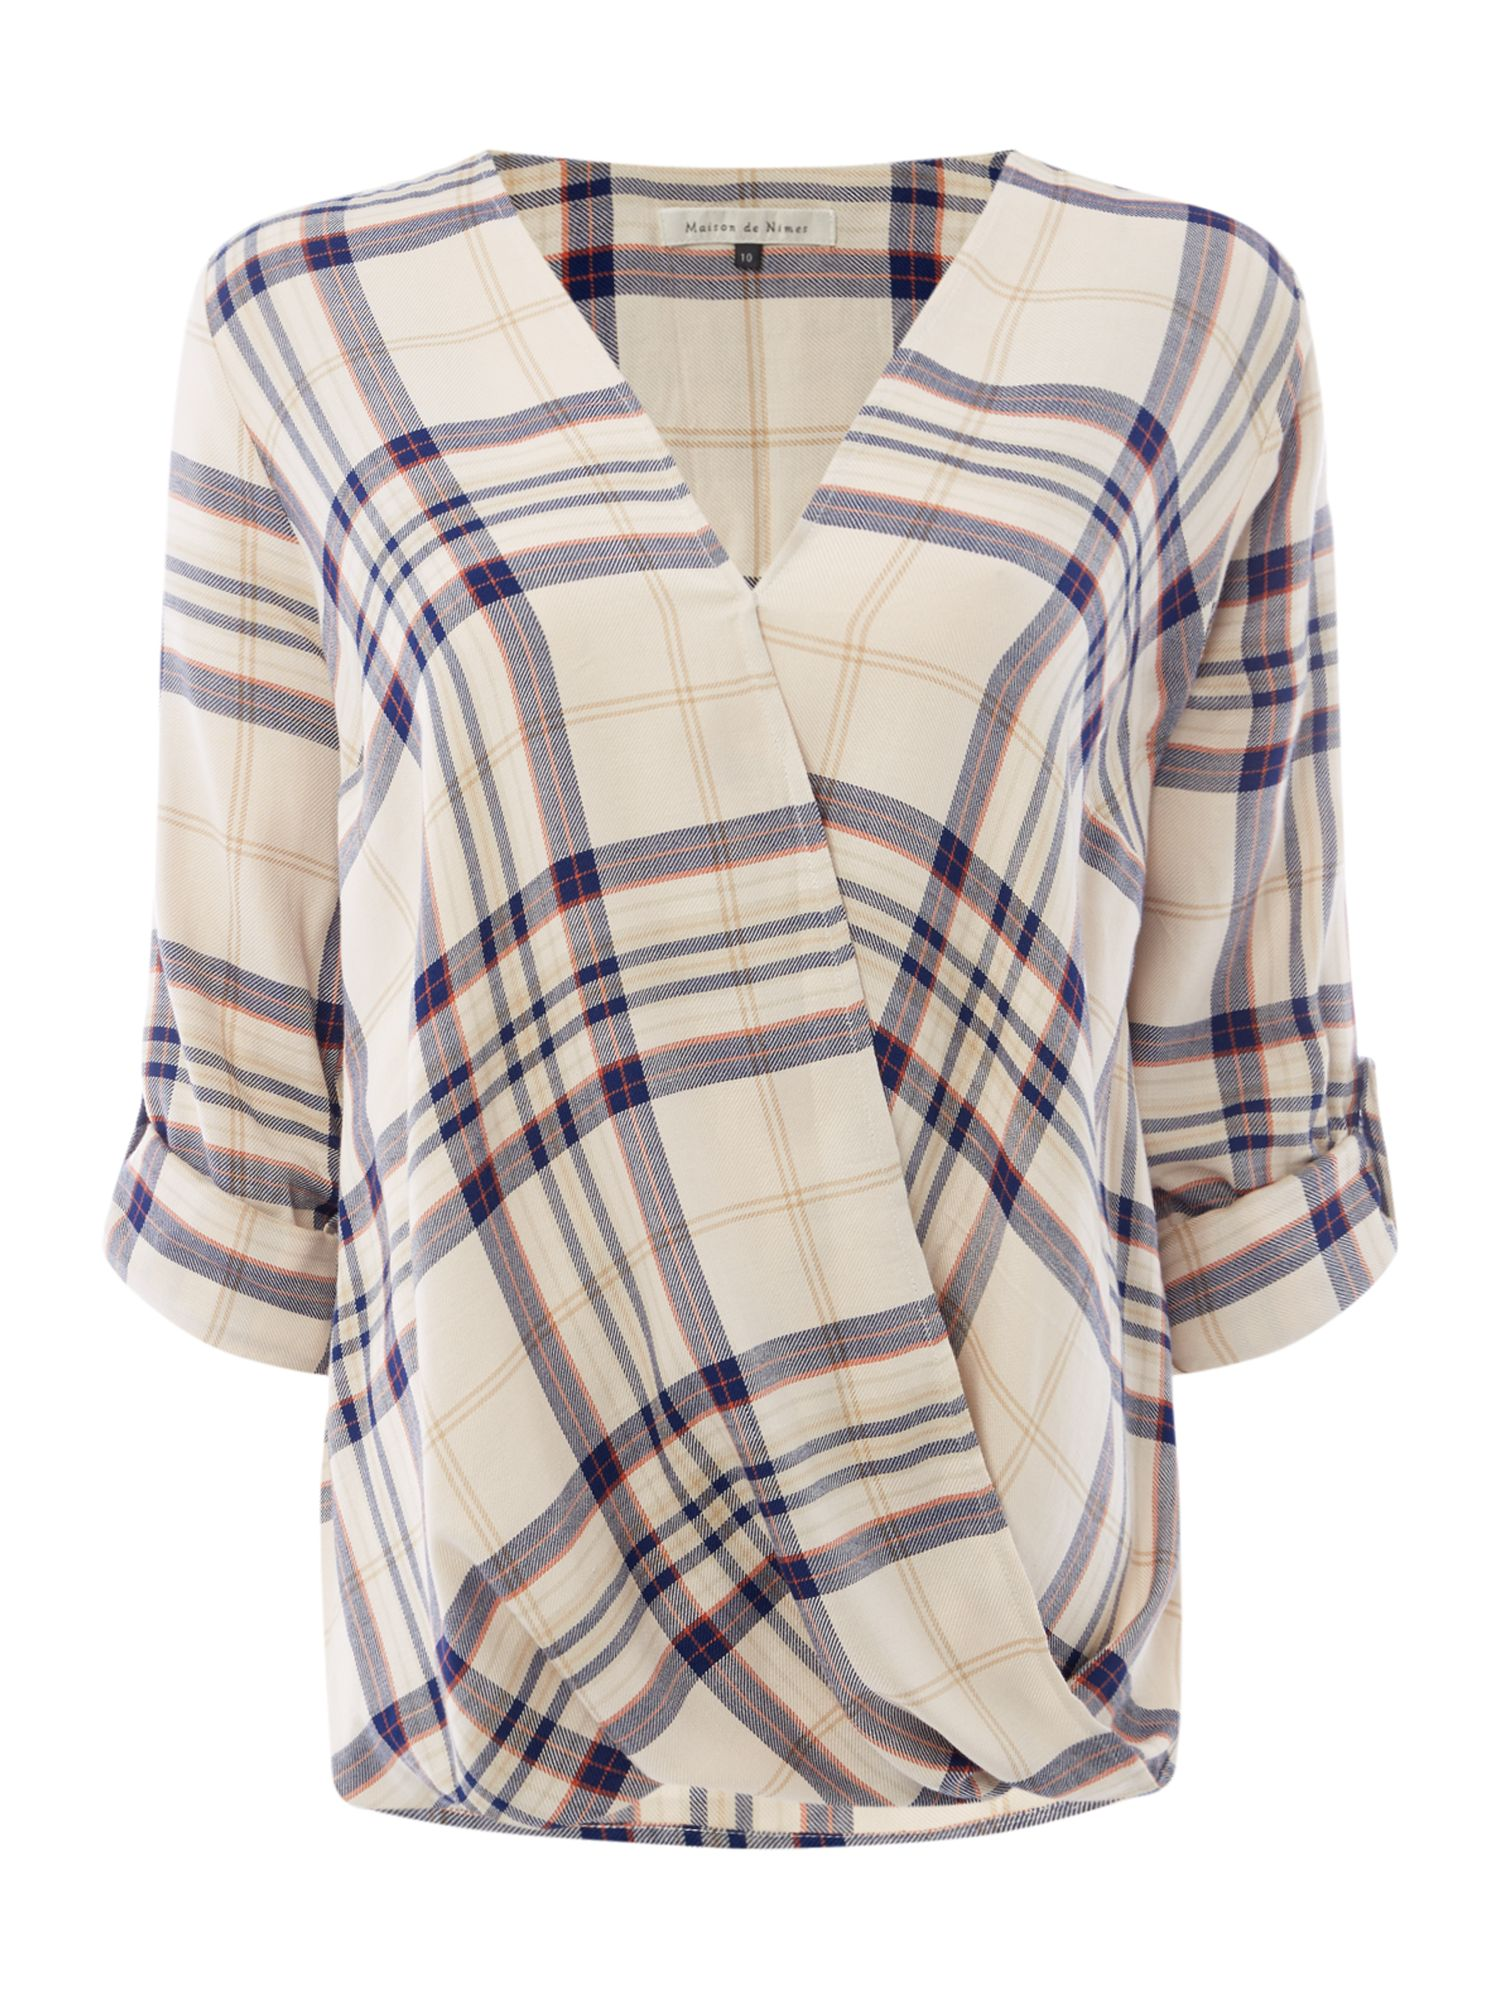 Maison De Nimes Oak Check Fluid Shirt, Multi-Coloured